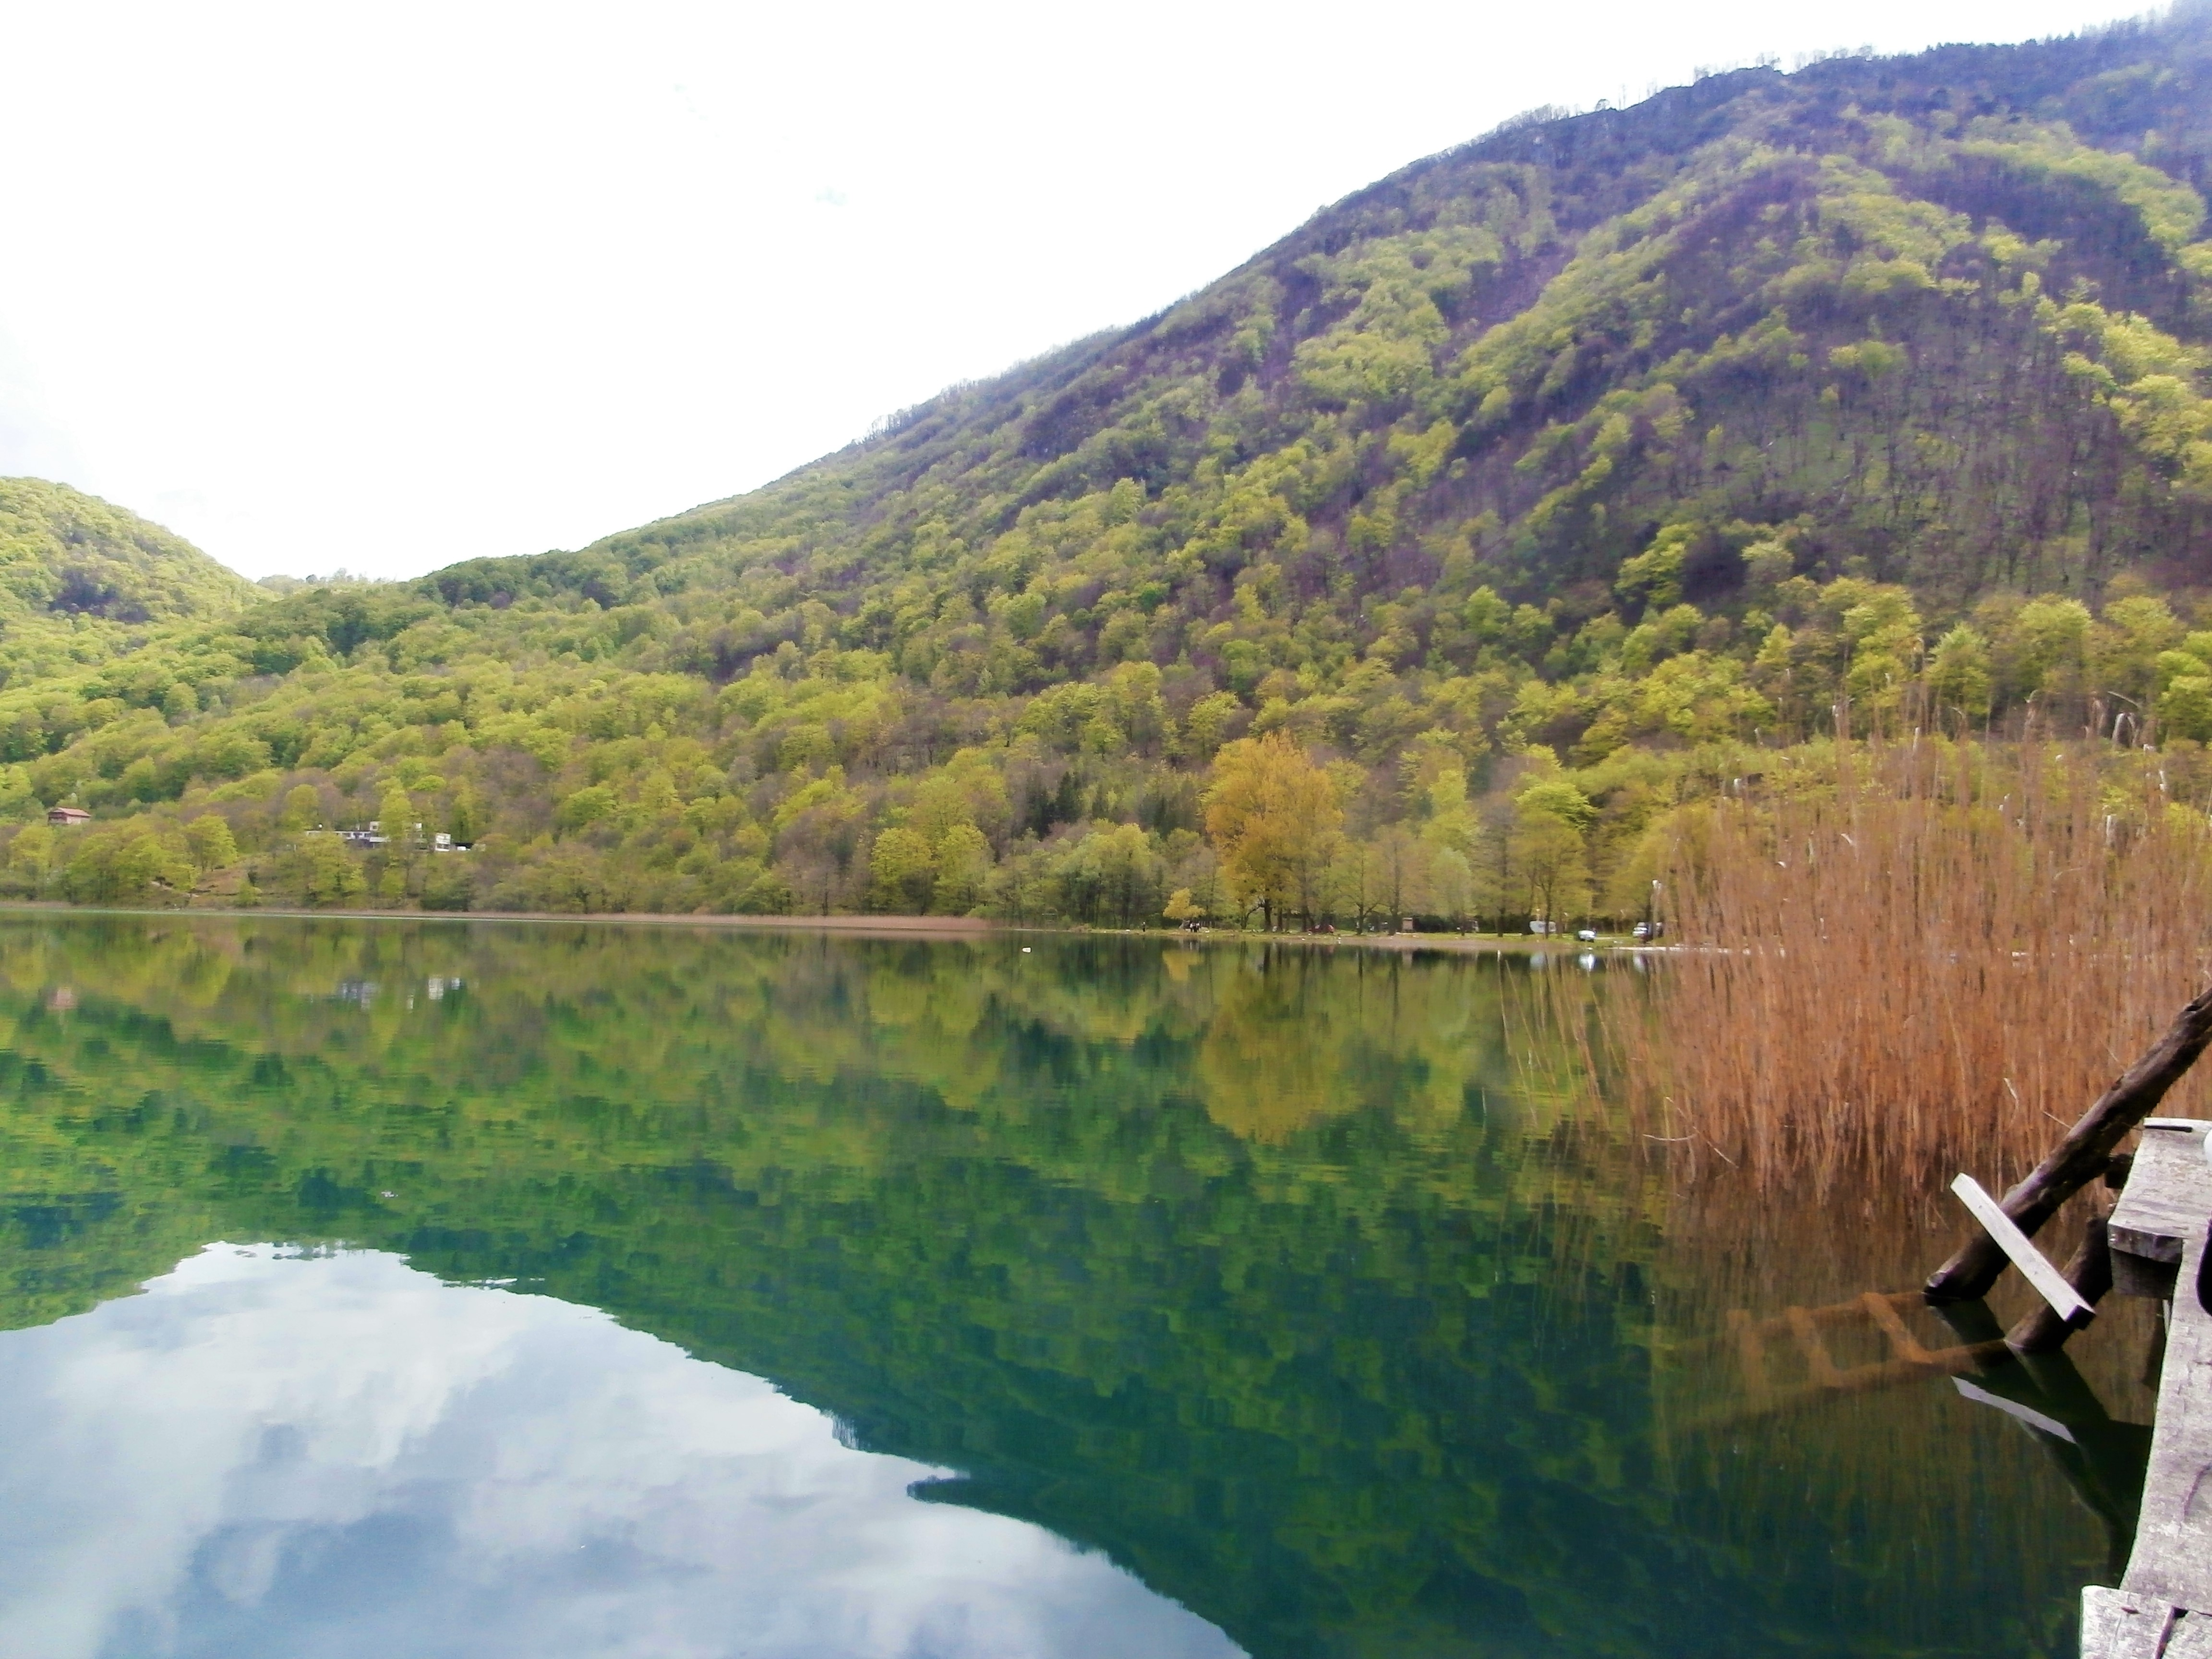 Boračko Lake hitchhiking Sarajevo Mostar Konjic Bosnia and Herzegovina BiH jetty reflection mountains forest